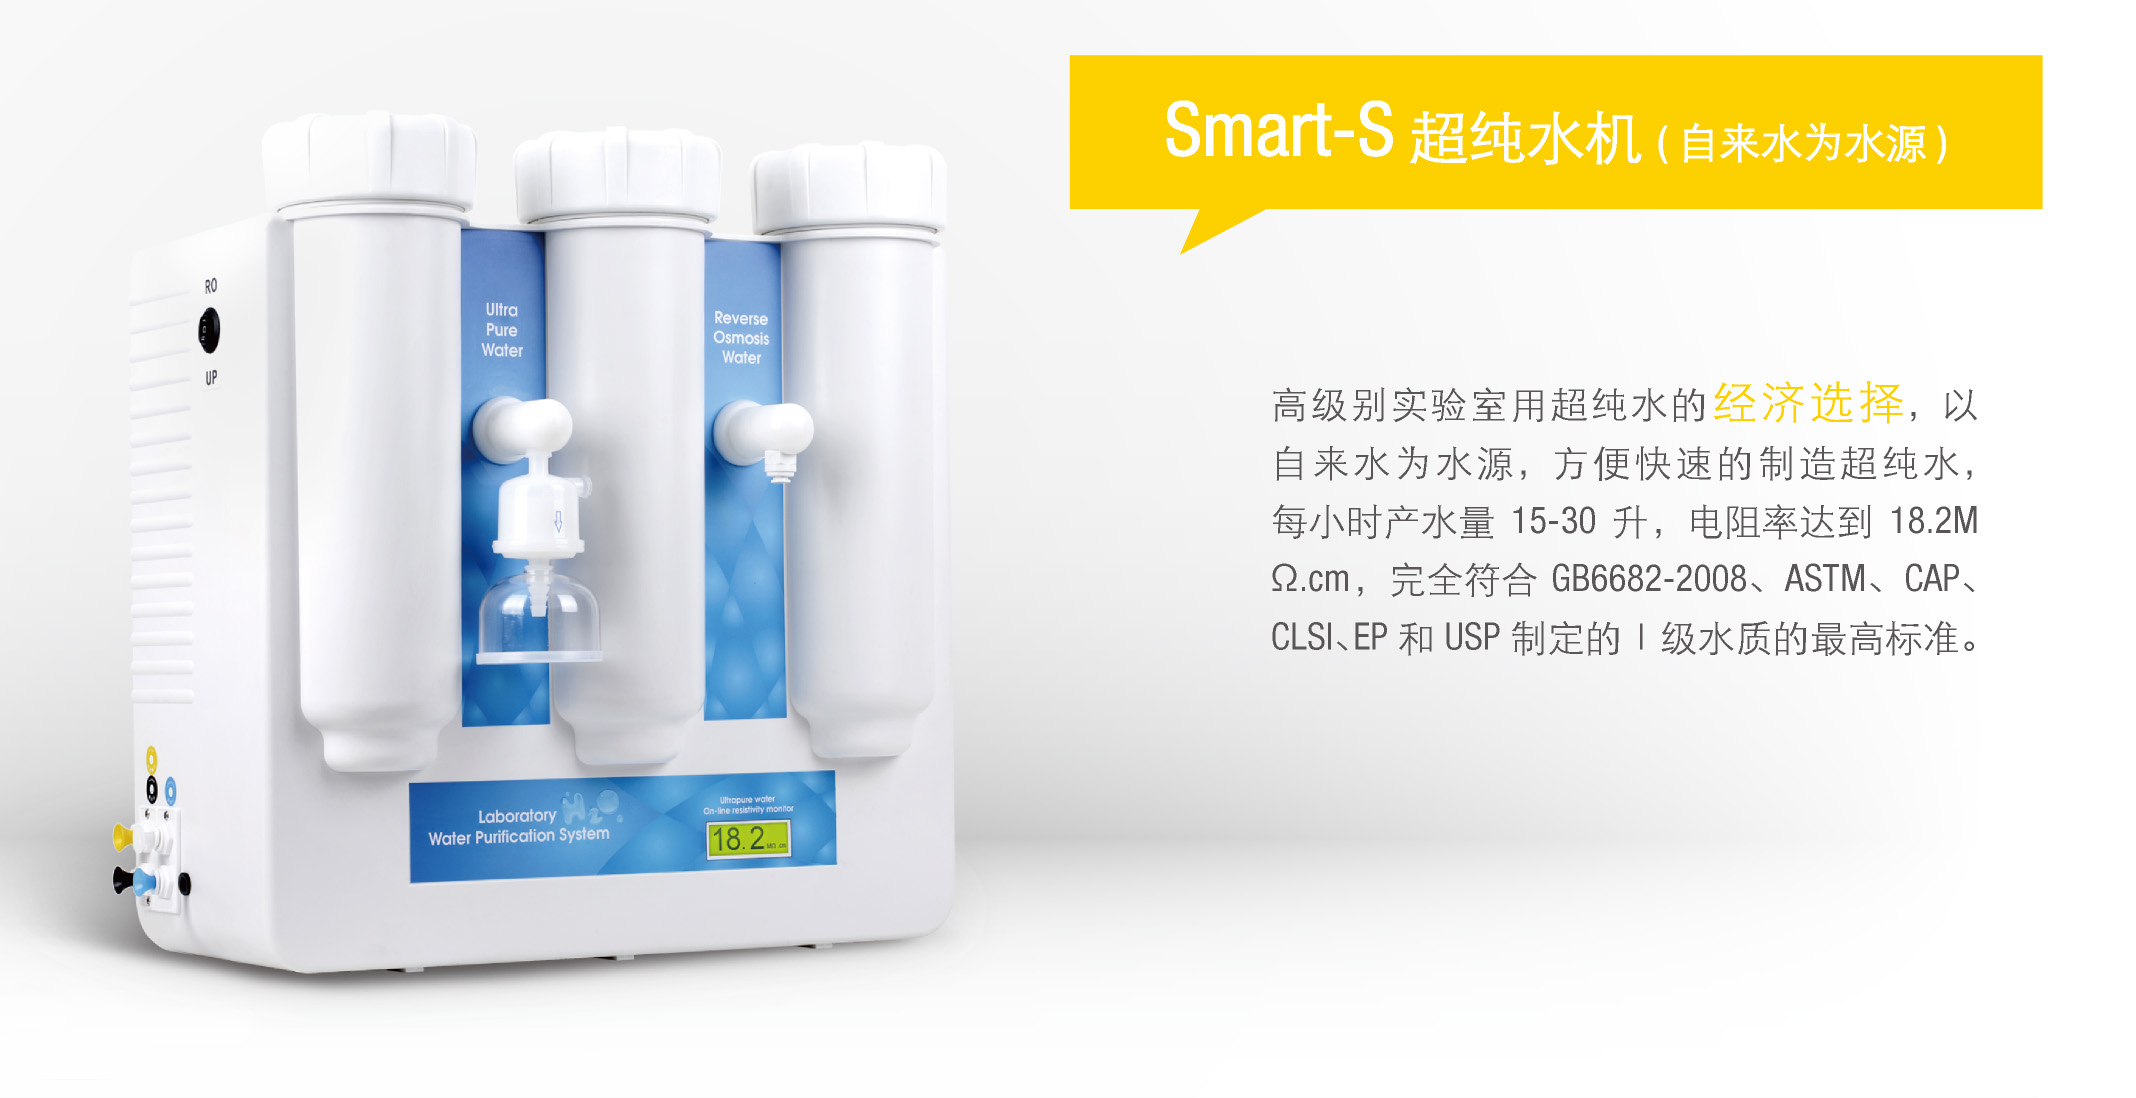 <strong><strong><strong><strong><strong><strong><strong><strong>上海和泰Smart-S超纯水机报价</strong></strong></strong></strong></strong></strong></strong></strong>